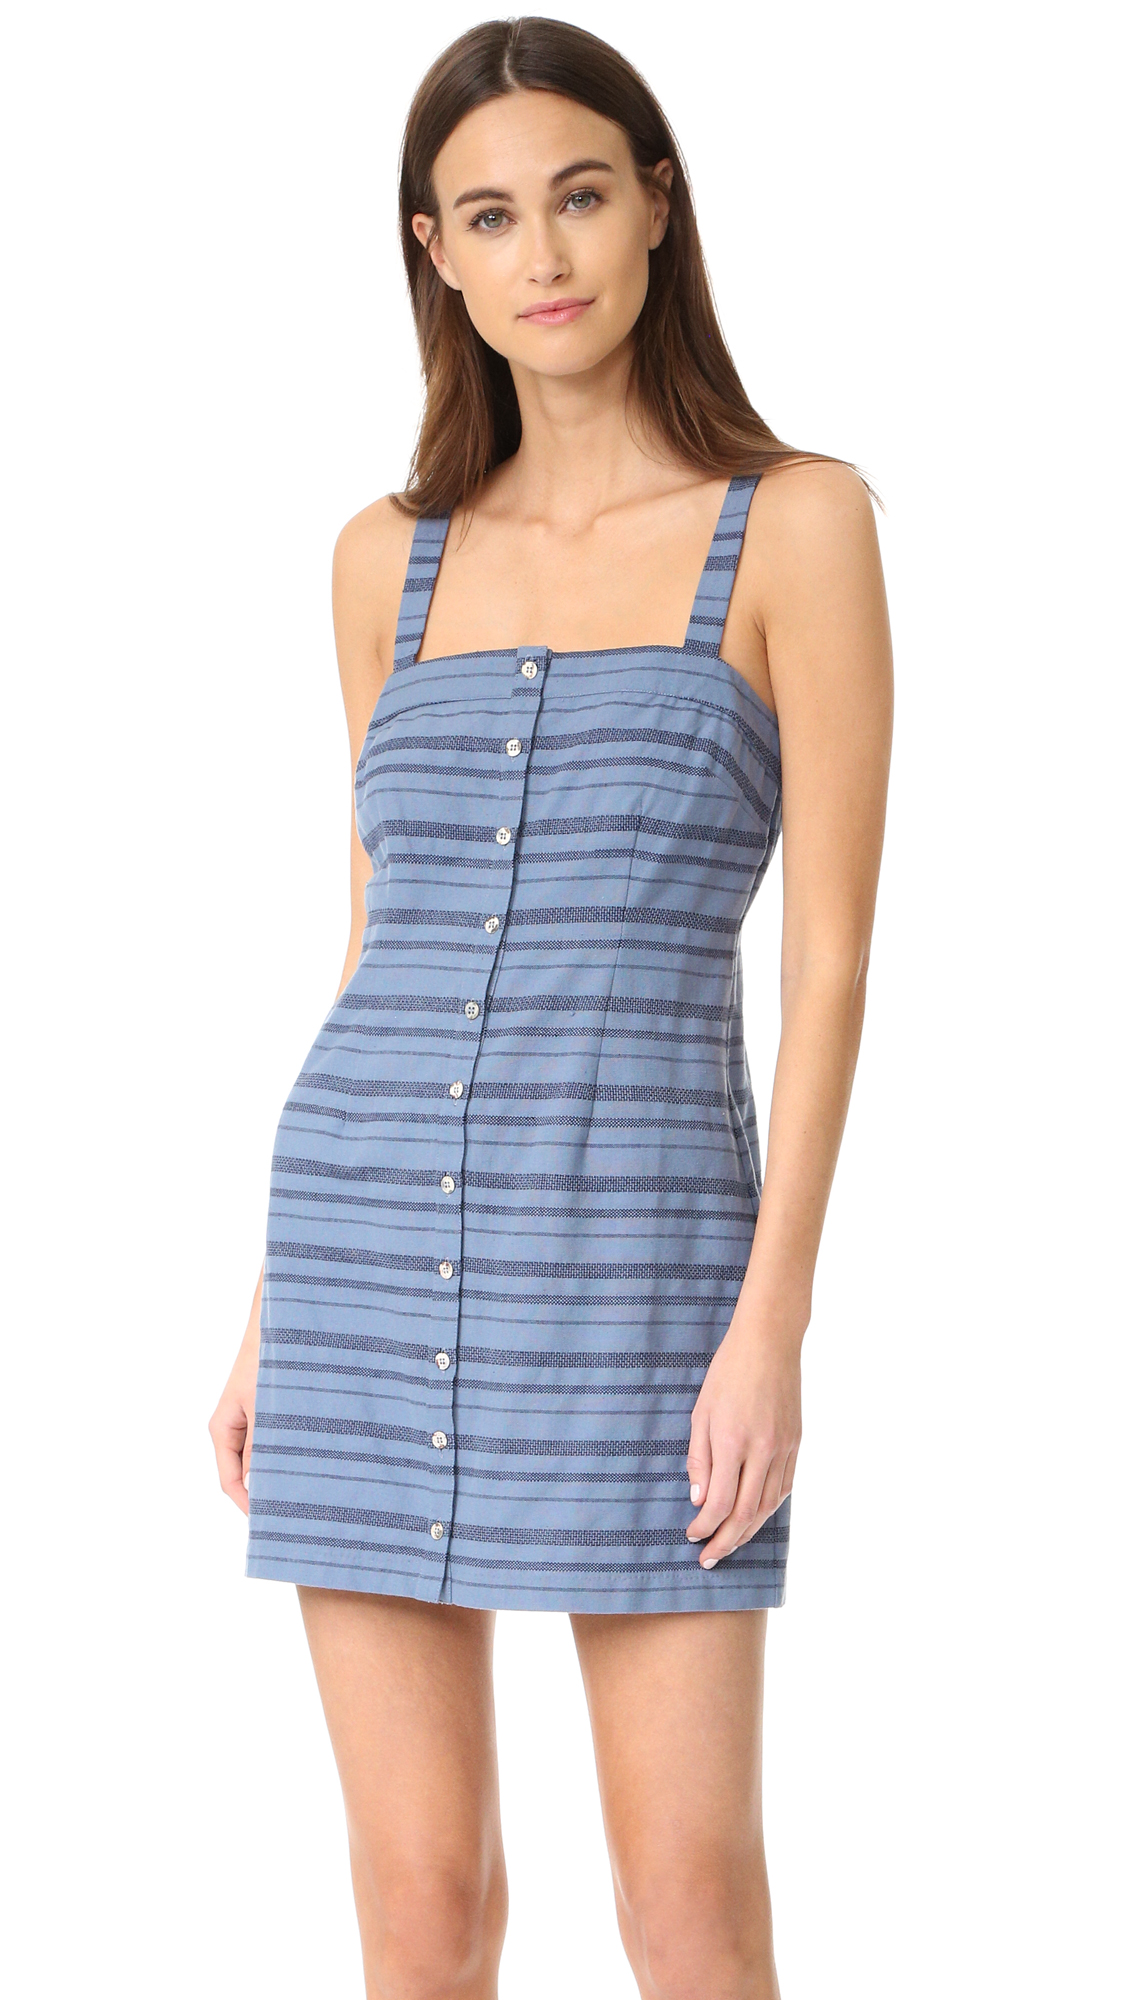 Mara Hoffman Sheath Mini Dress - Denim Multi